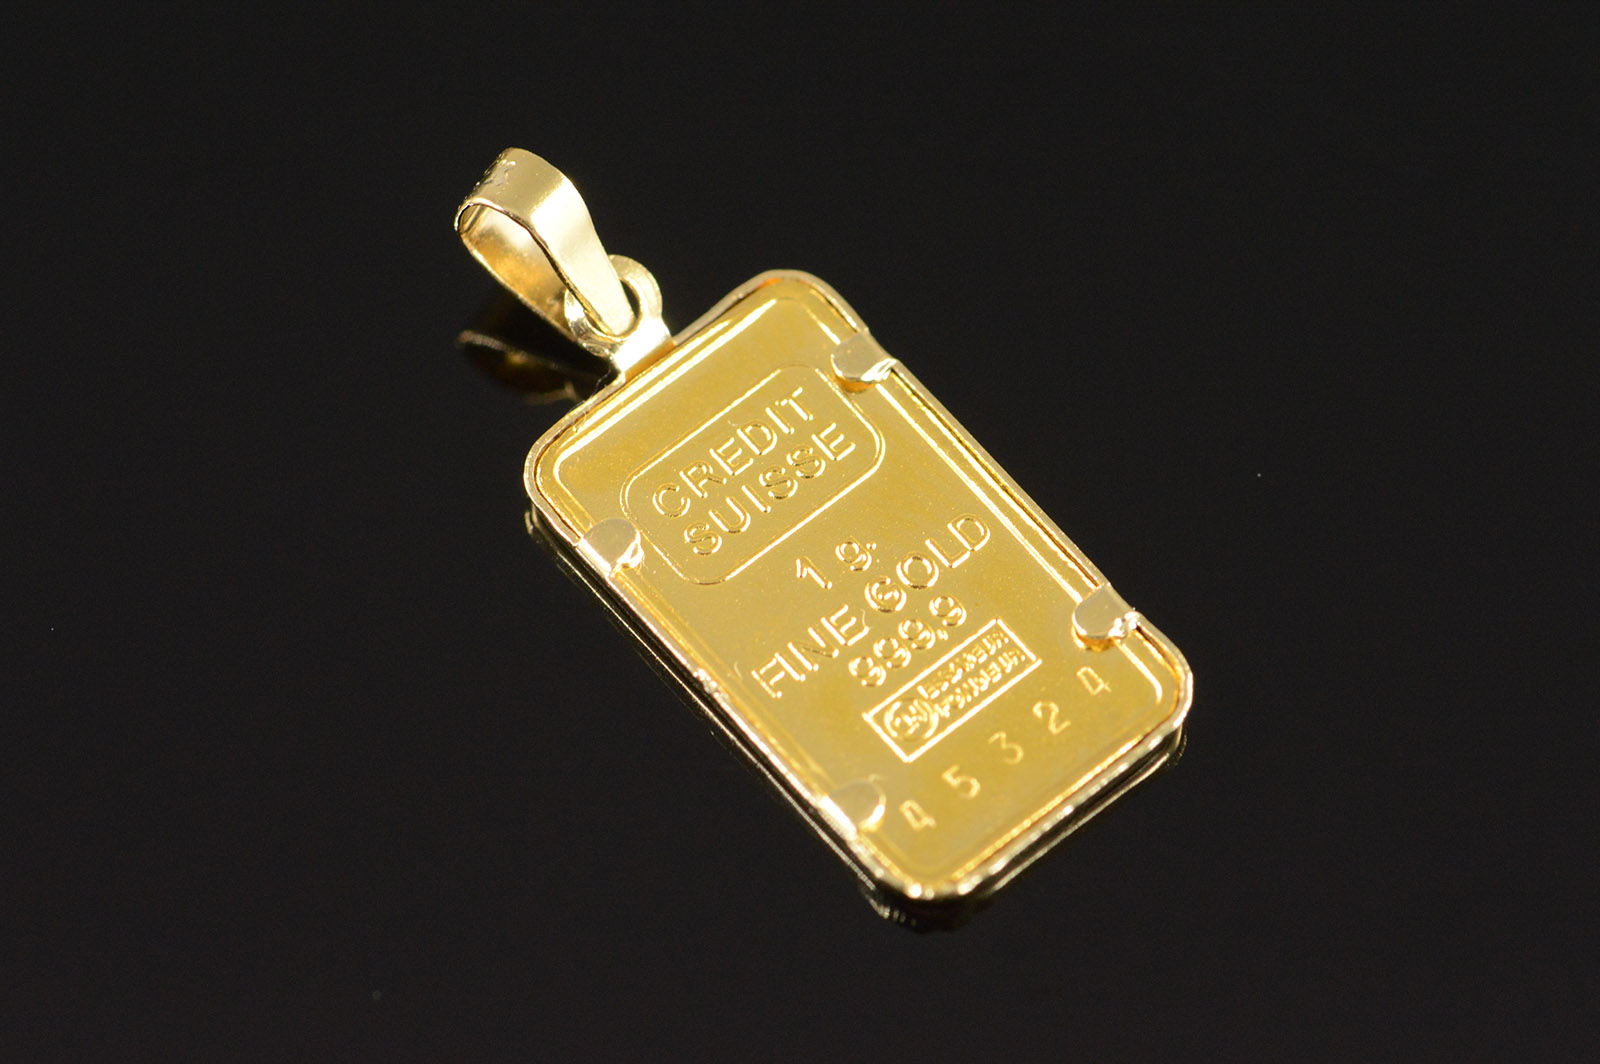 14k 13g 1 gram 999 pure gold bar yellow gold pendant property room 14k 13g 1 gram 999 pure gold bar yellow gold pendant mozeypictures Image collections